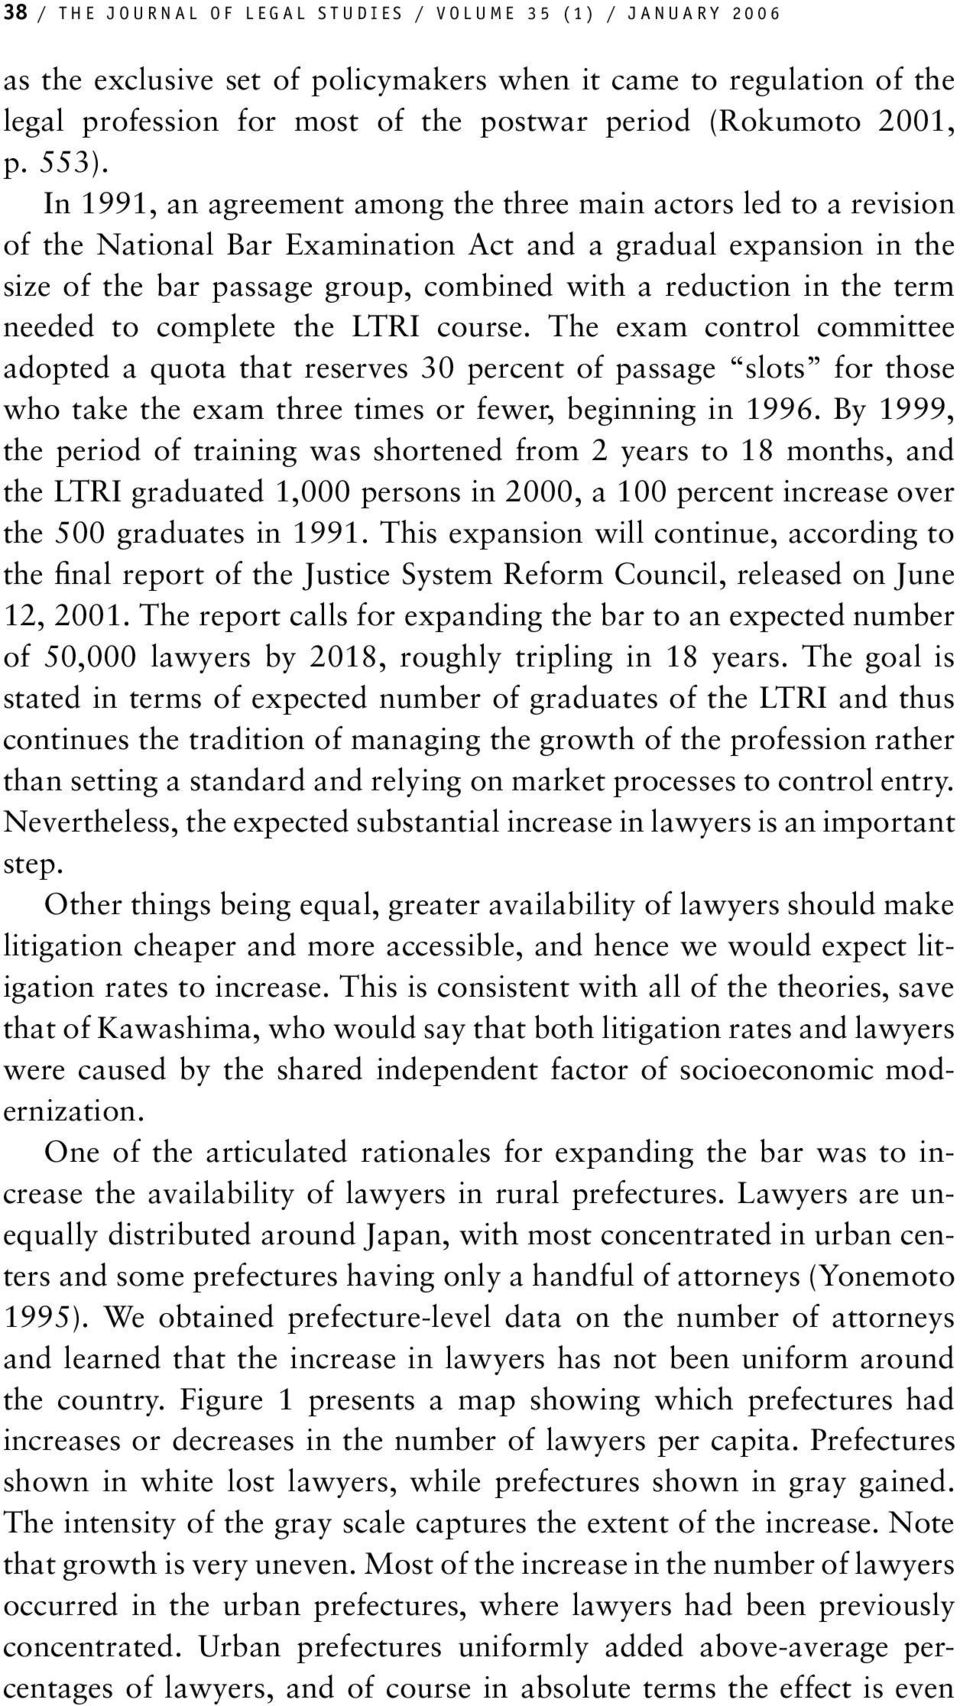 In 1991, an agreement among the three main actors led to a revision of the National Bar Examination Act and a gradual expansion in the size of the bar passage group, combined with a reduction in the